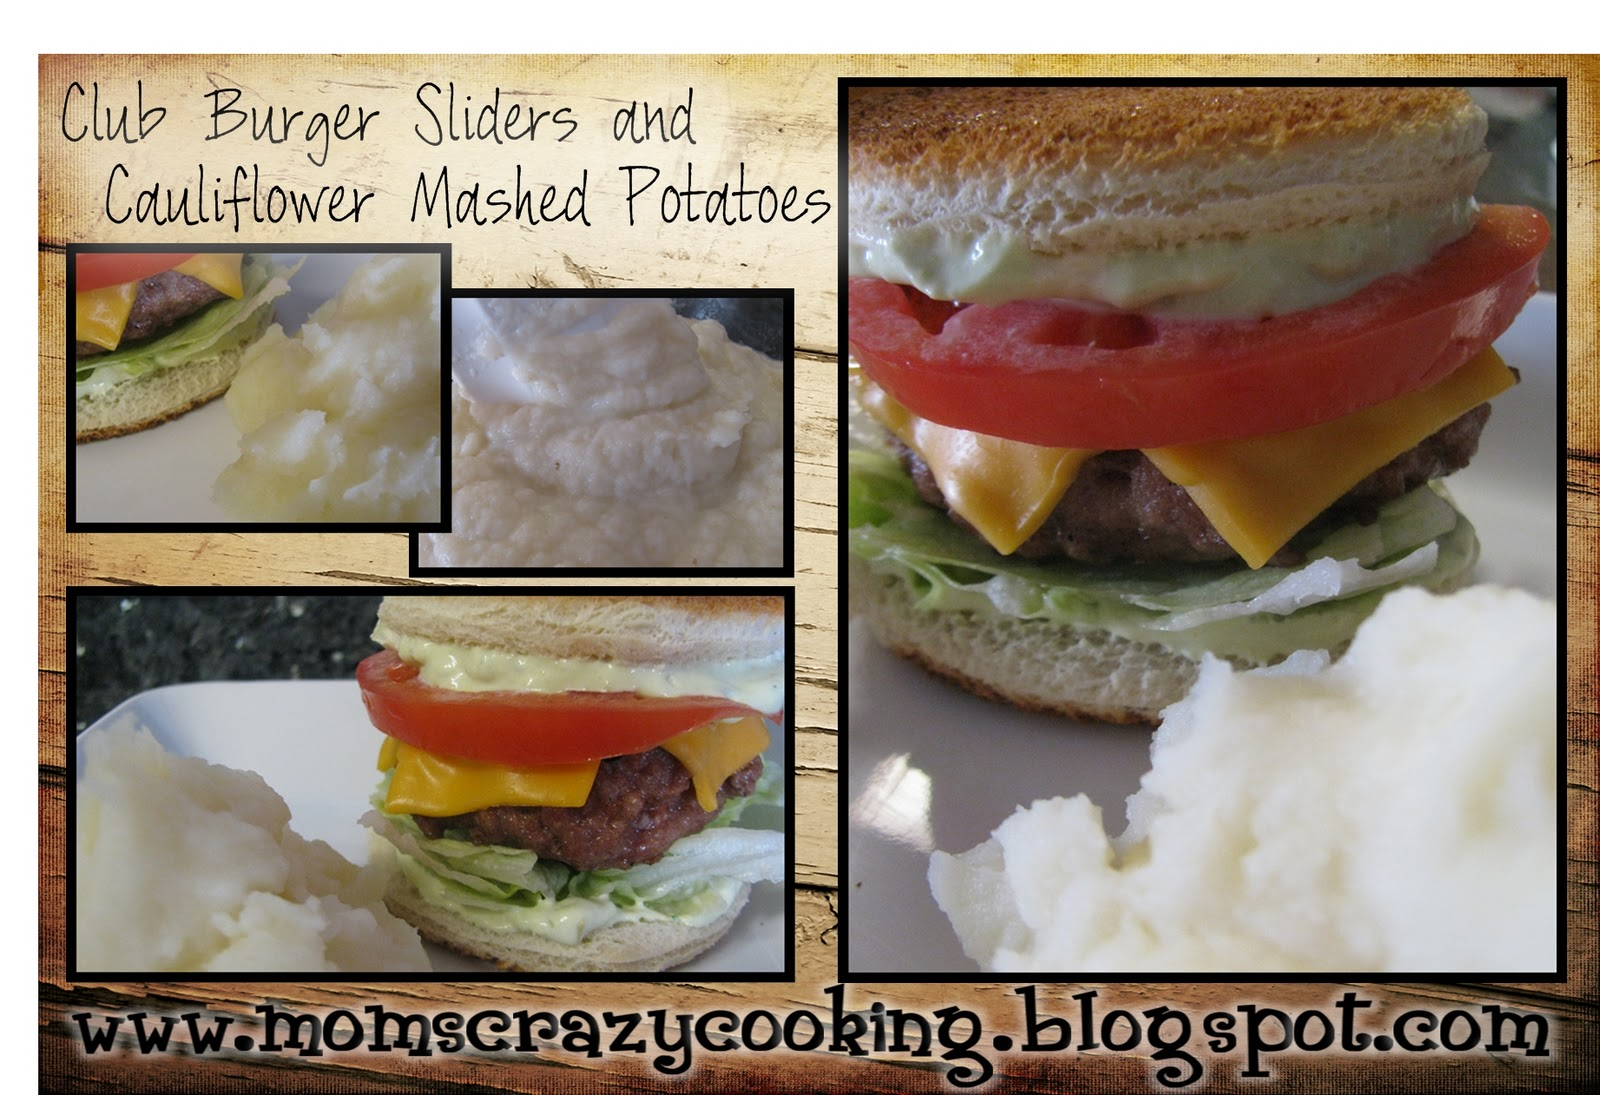 Club%252BBurger%252BSliders%252Band%252BCauliflower%252BMashed%252BPotatoes rachael cook rachael ray ...